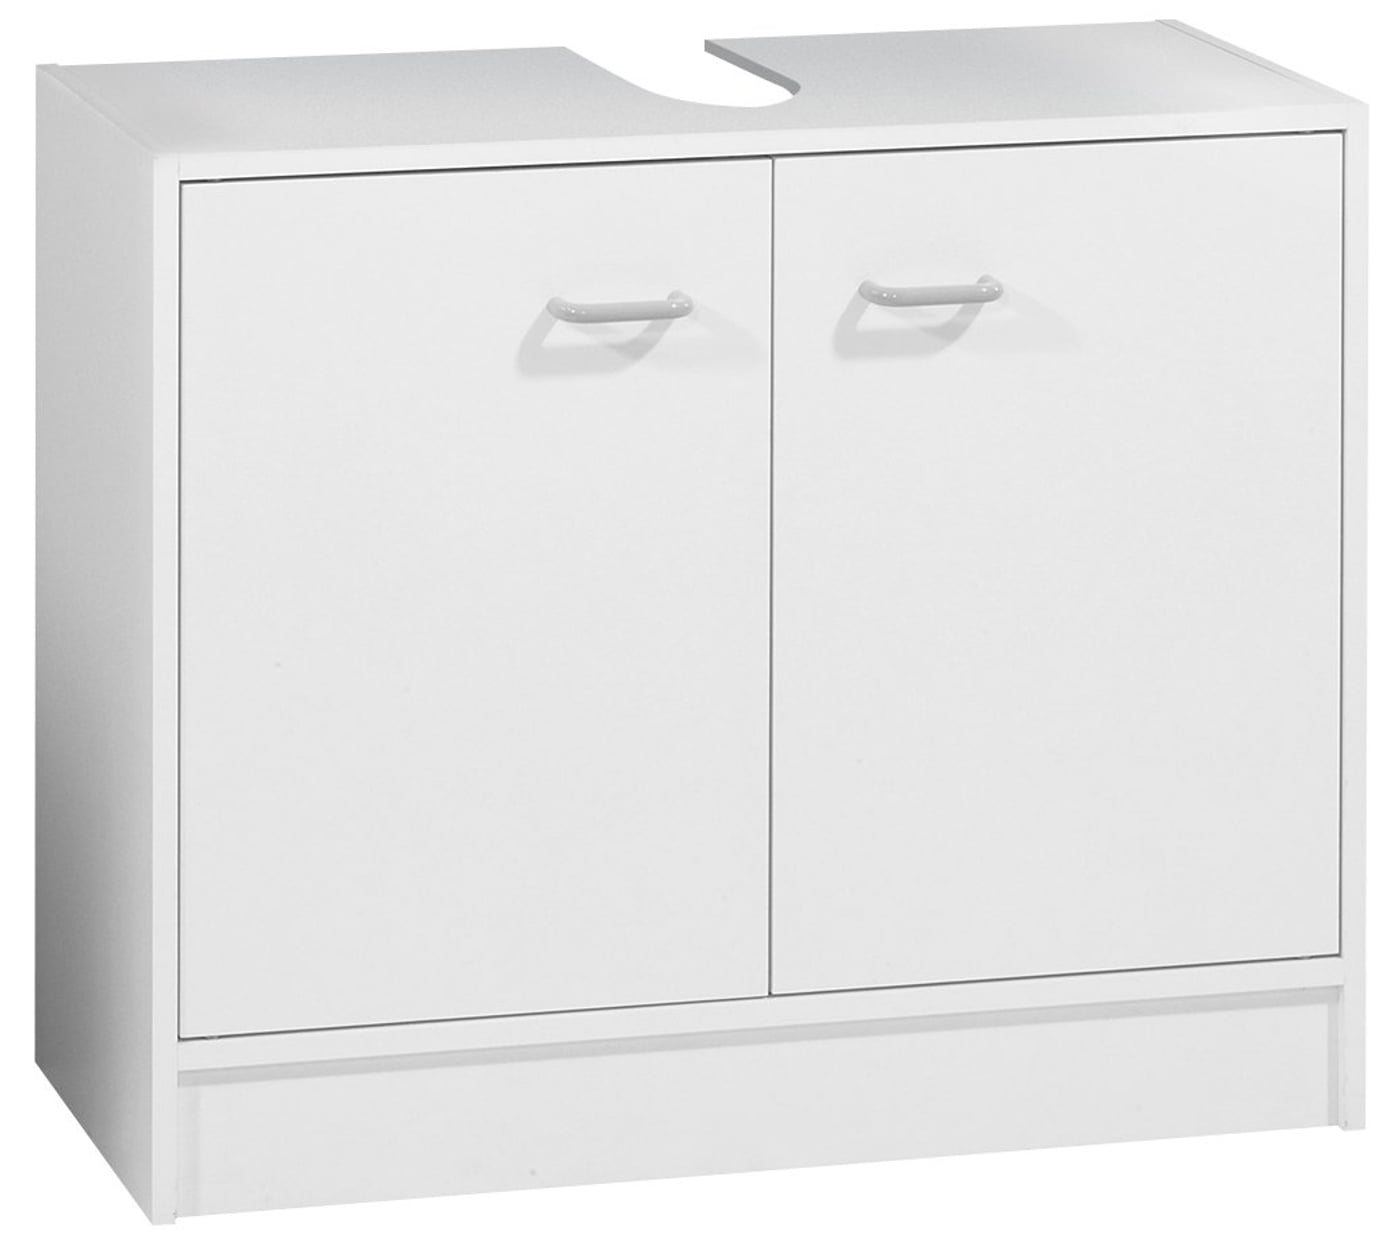 Fackelmann standard meuble lavabo de base migros for Migros meubles